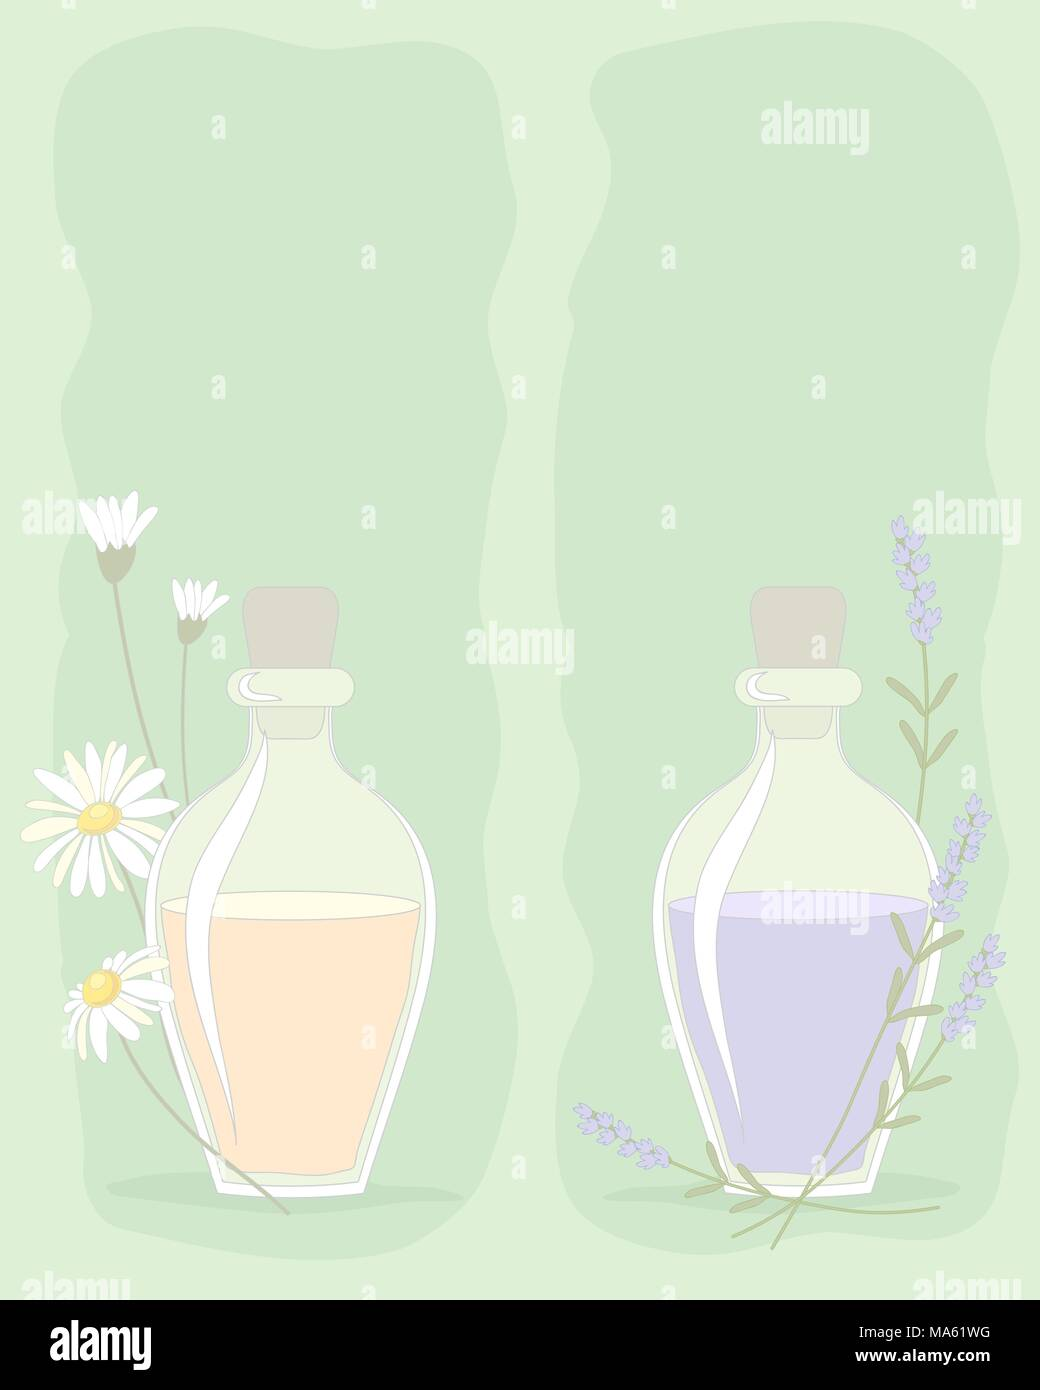 Daisy perfume advert stock photos daisy perfume advert stock a vector illustration in eps 10 format of small bottles of essential oils with flower decoration izmirmasajfo